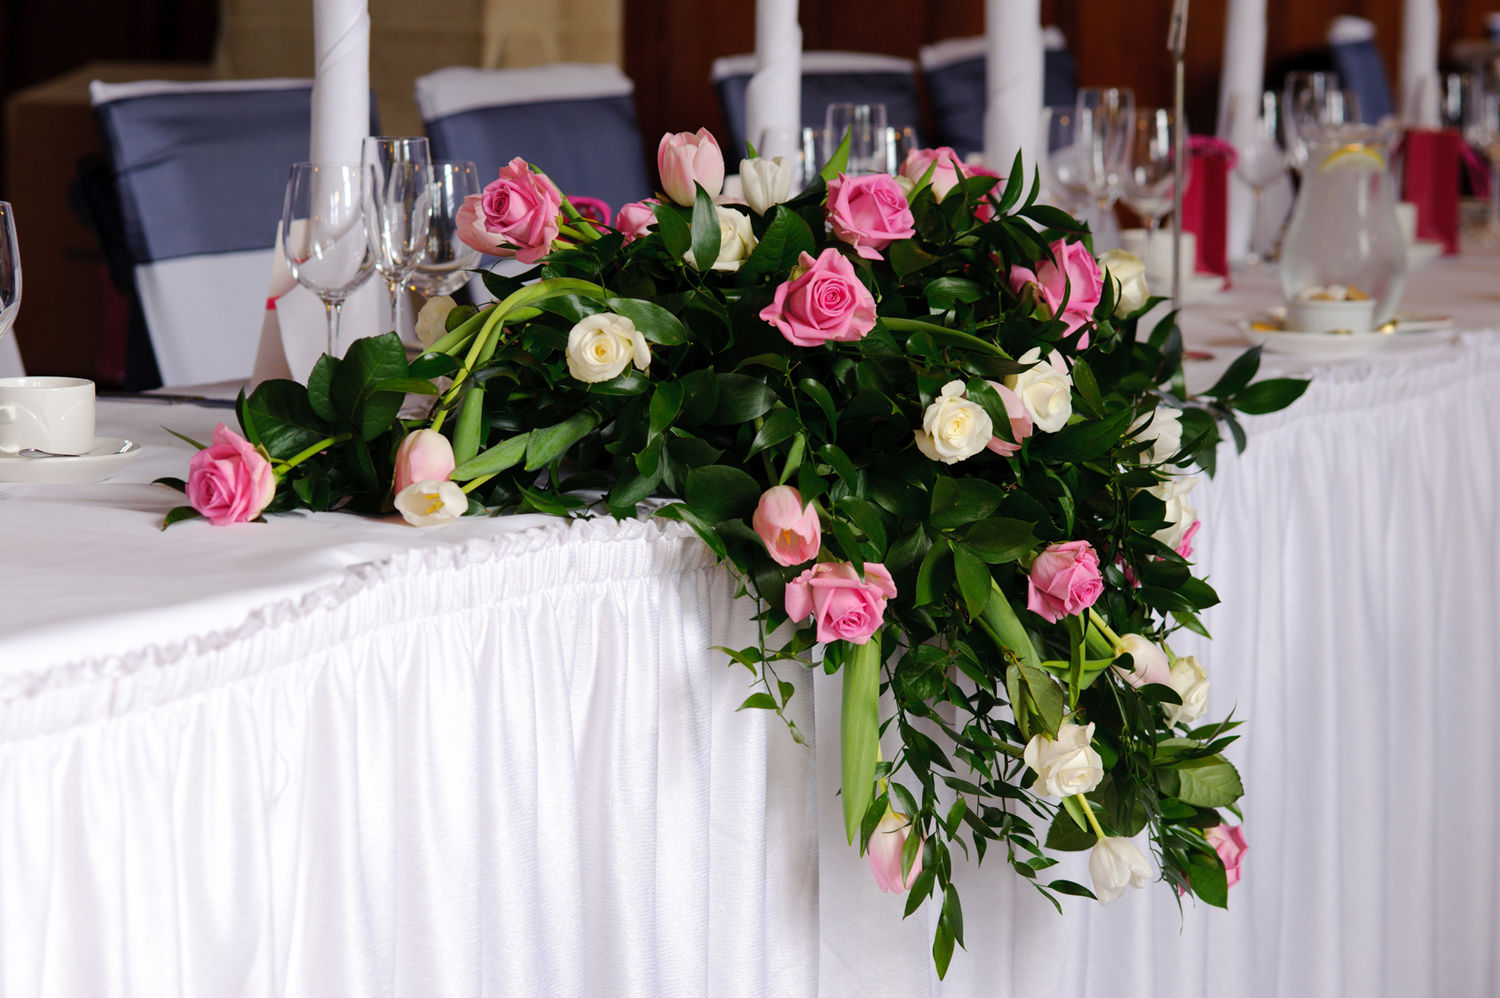 Ceremony reception - Fleurs table mariage ...